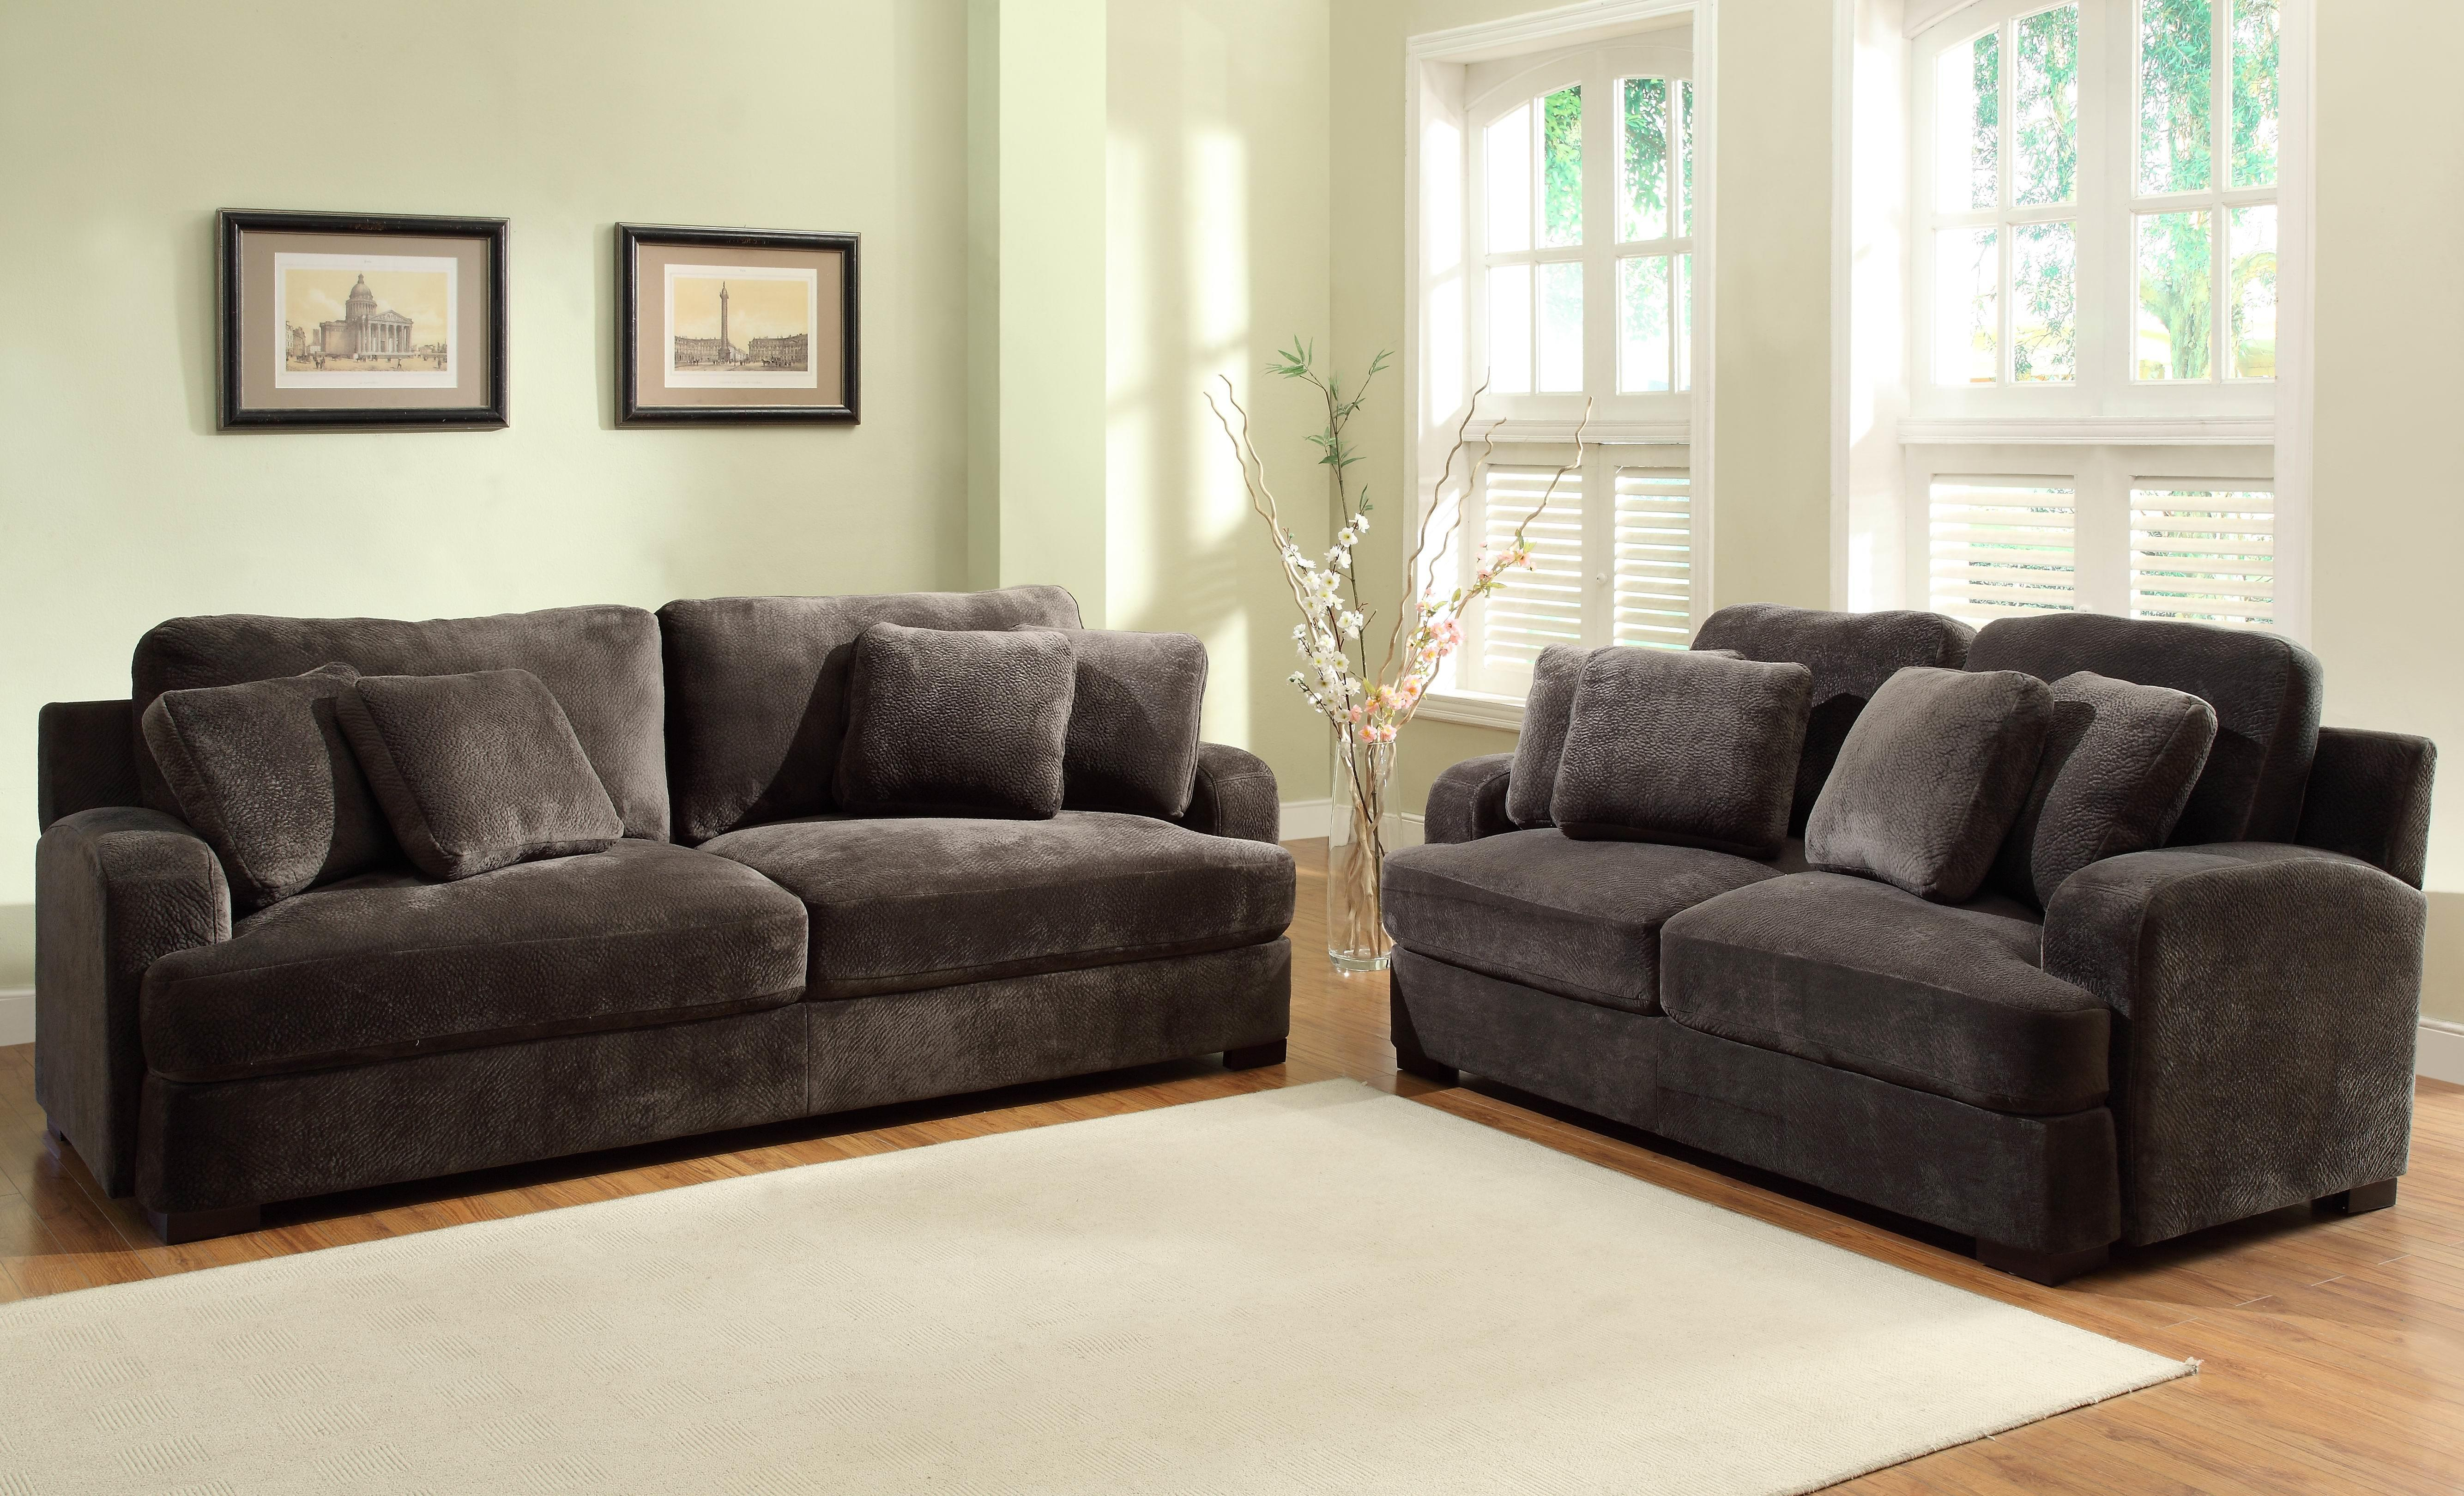 How To Set Living Room Greyson 7 Piece Living Room Set Bob 39s intended for 12 Smart Tricks of How to Upgrade How To Set Up Living Room